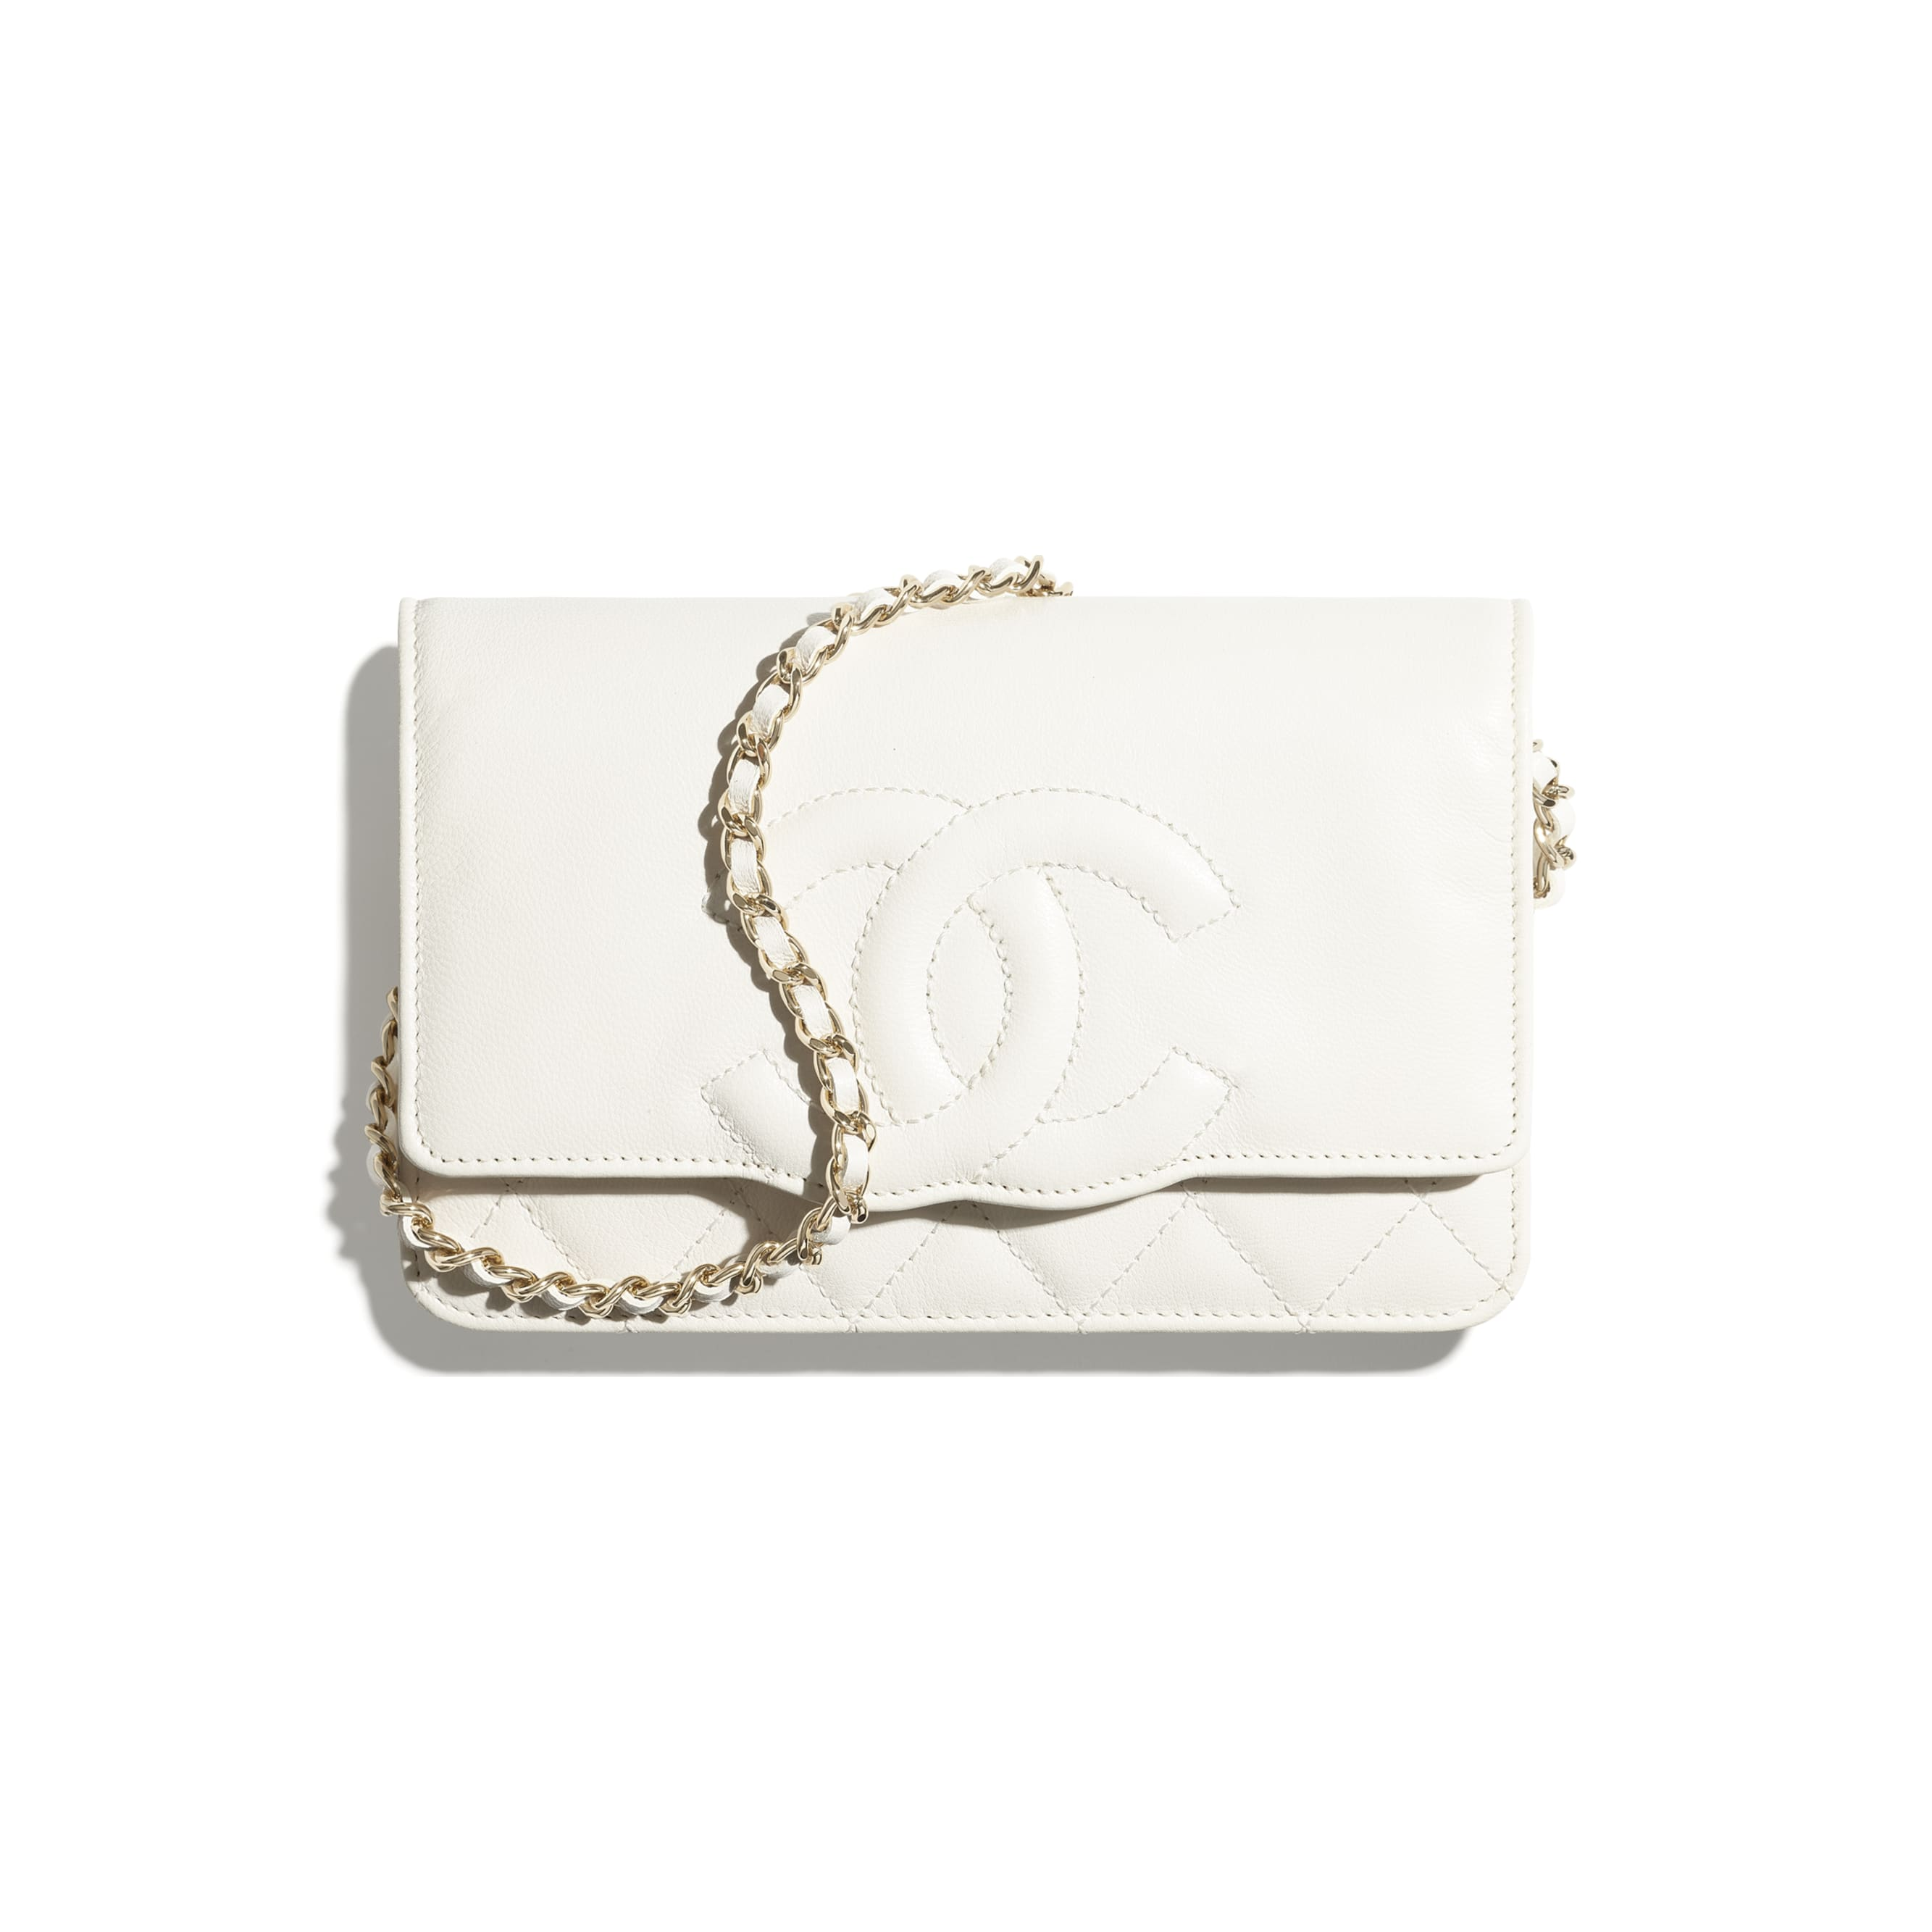 Wallet On Chain - White - Goatskin & Gold-Tone Metal - CHANEL - Default view - see standard sized version